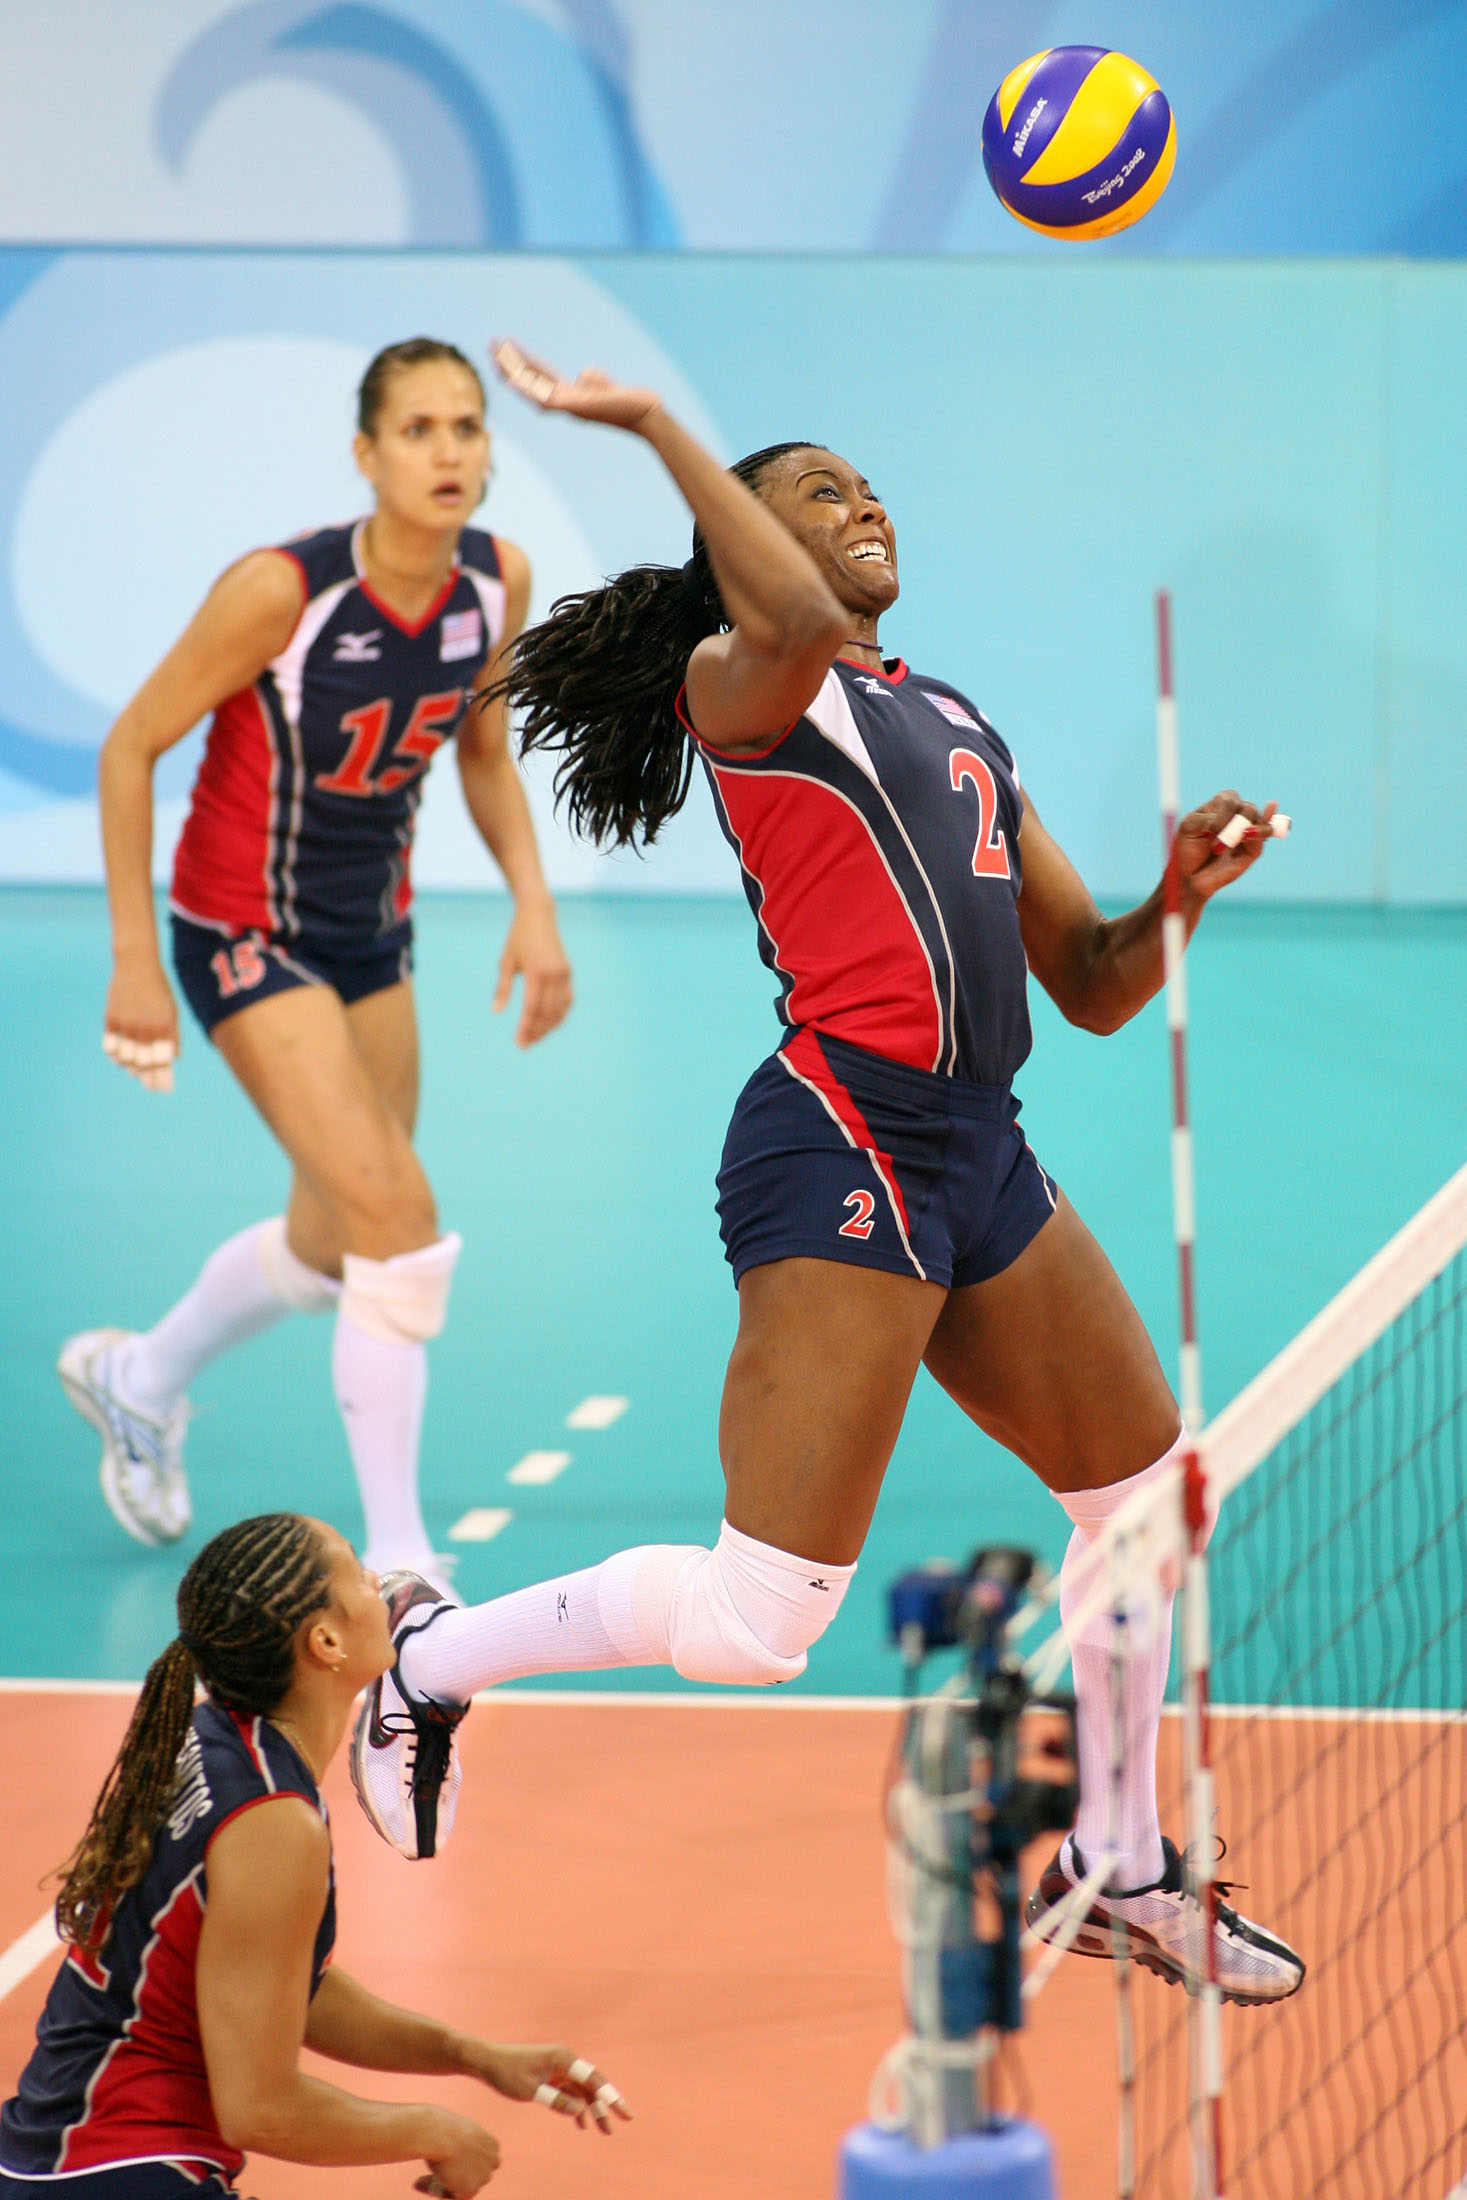 Danielle Scott Arruda is the first American, male or female, to play volleyball in five Olympic games.